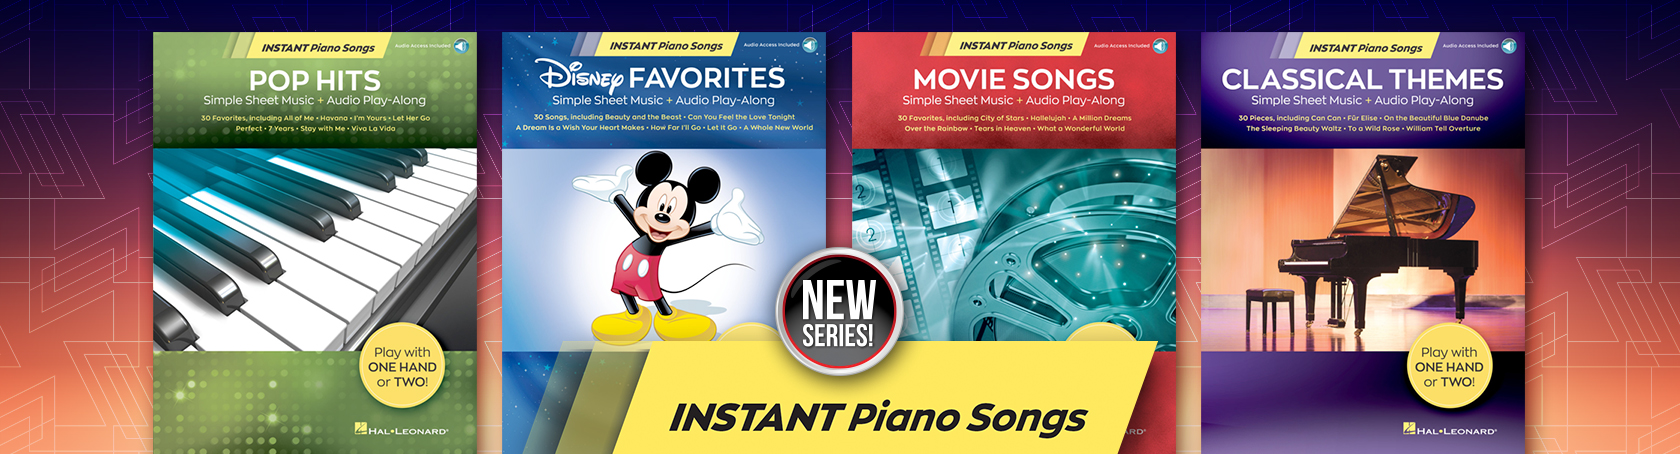 Instant Piano Songs - New Series!